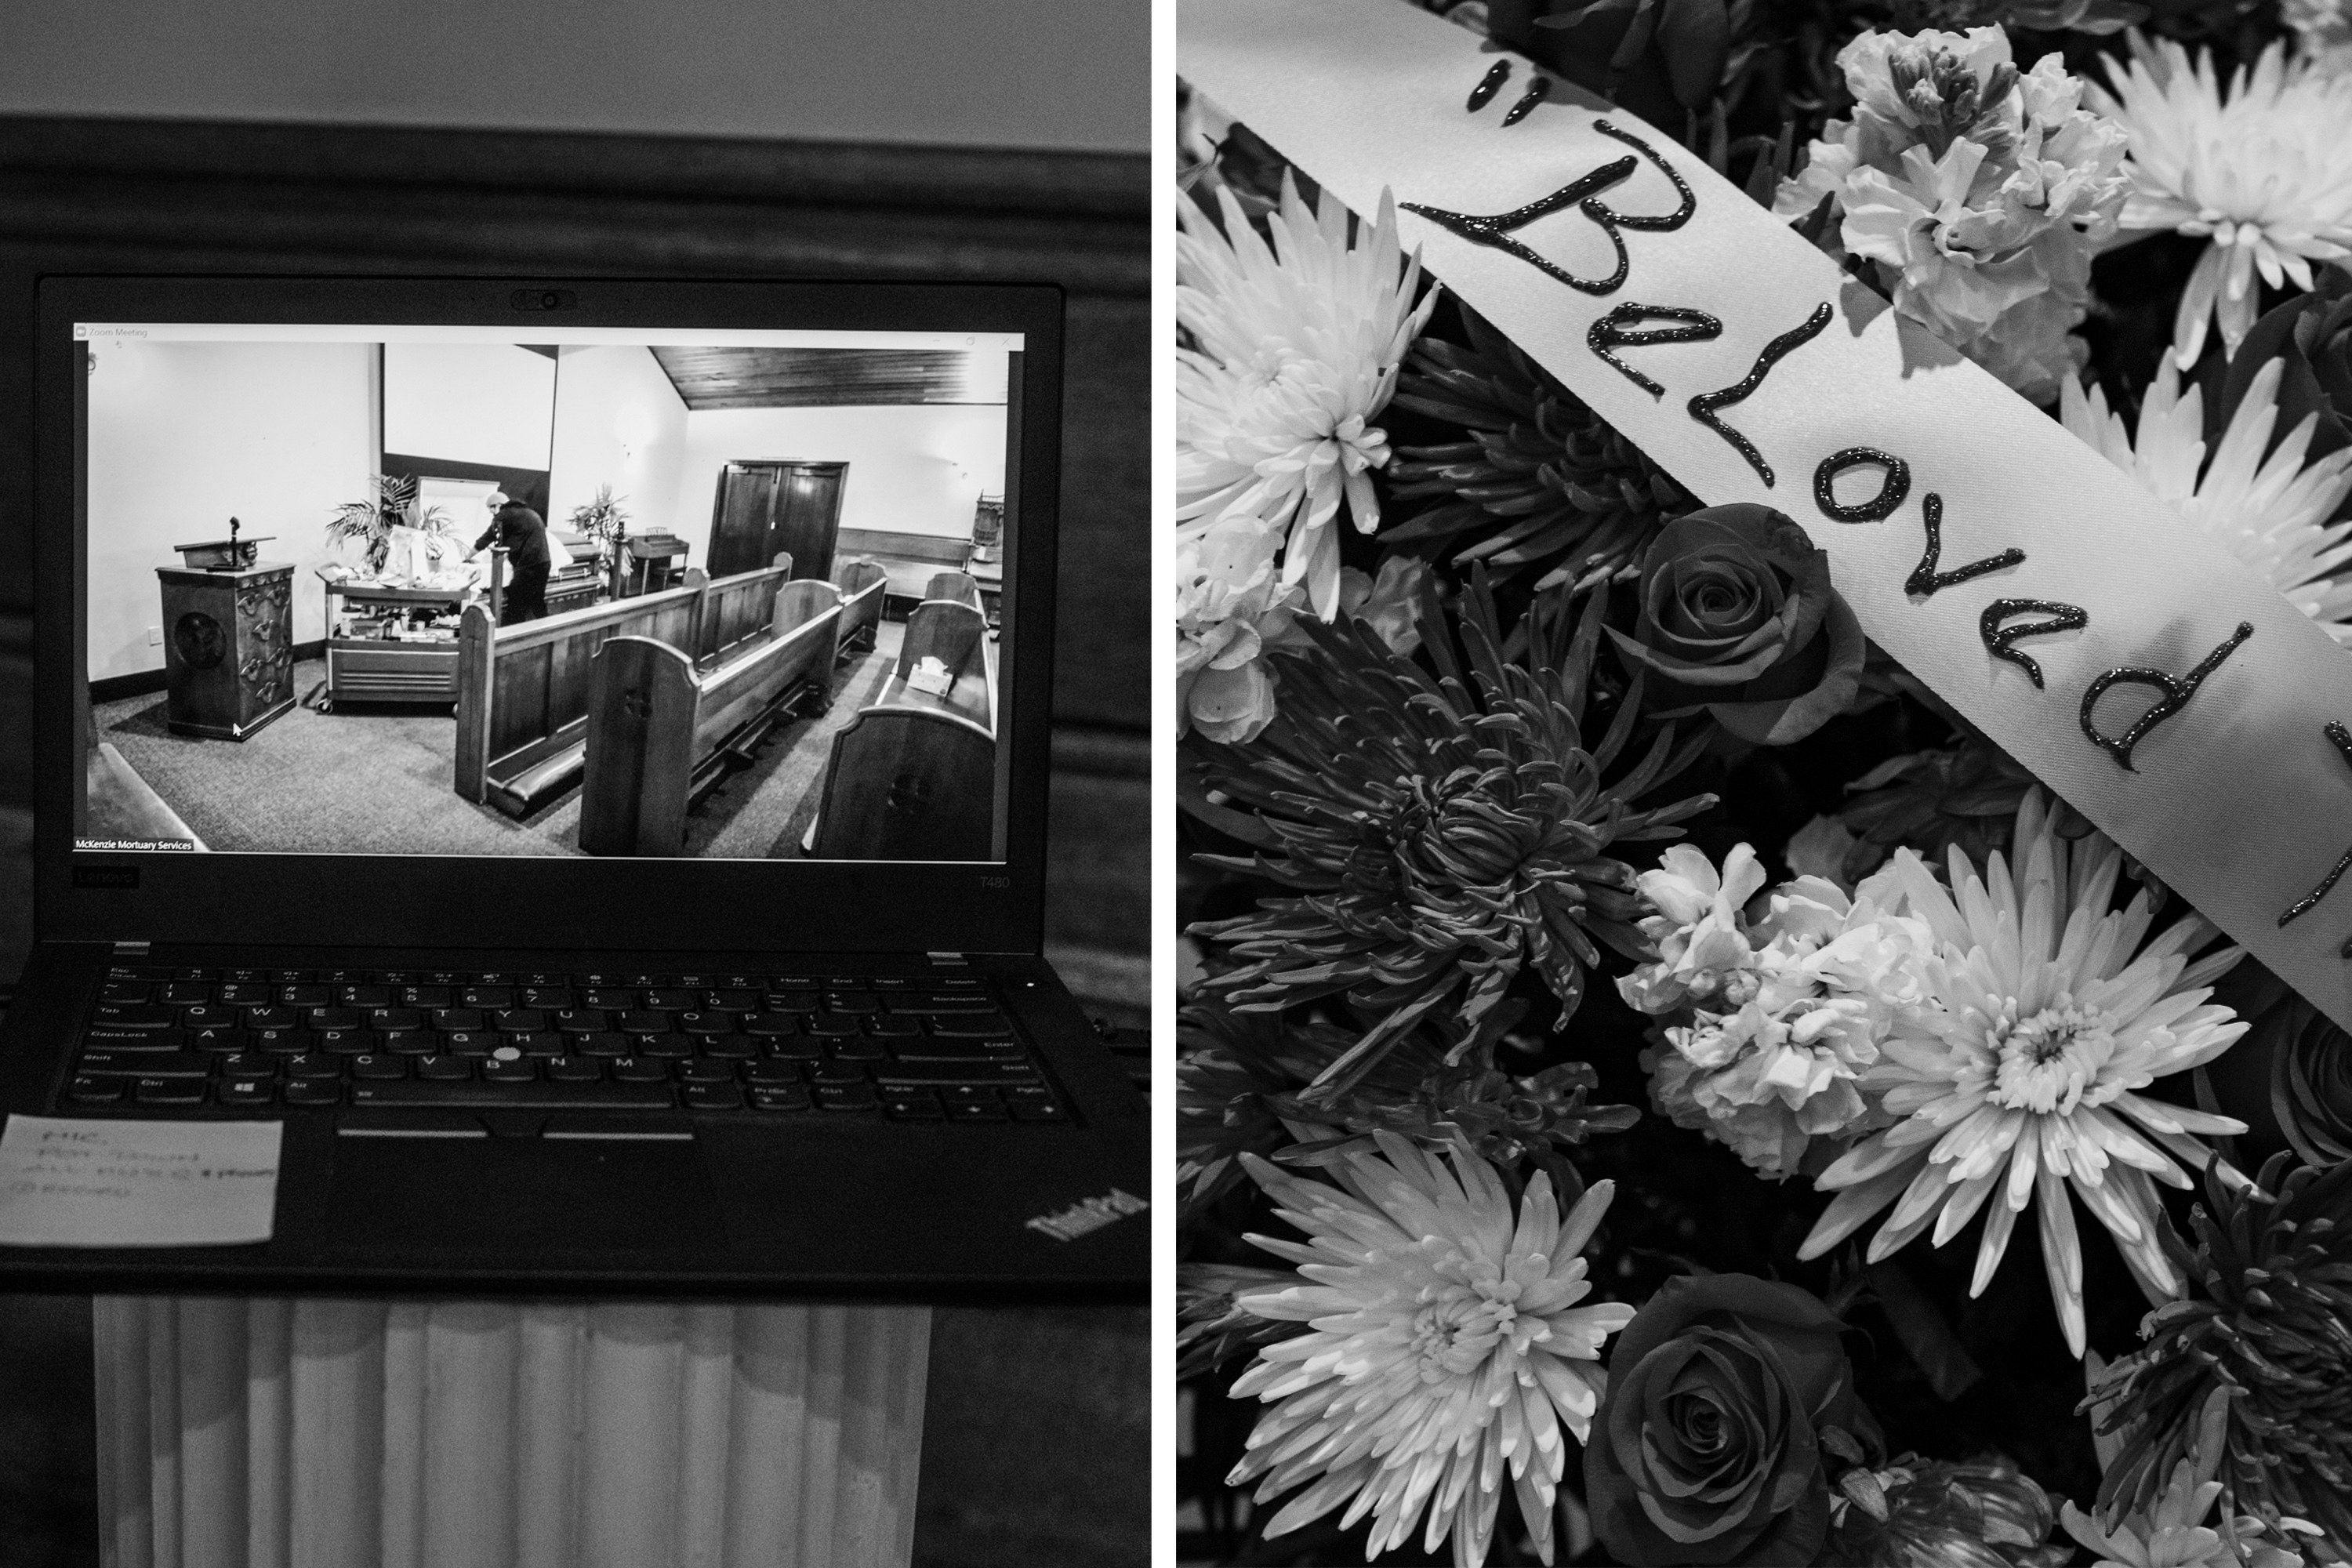 A funeral service is seen on a laptop and a bouquet of roses